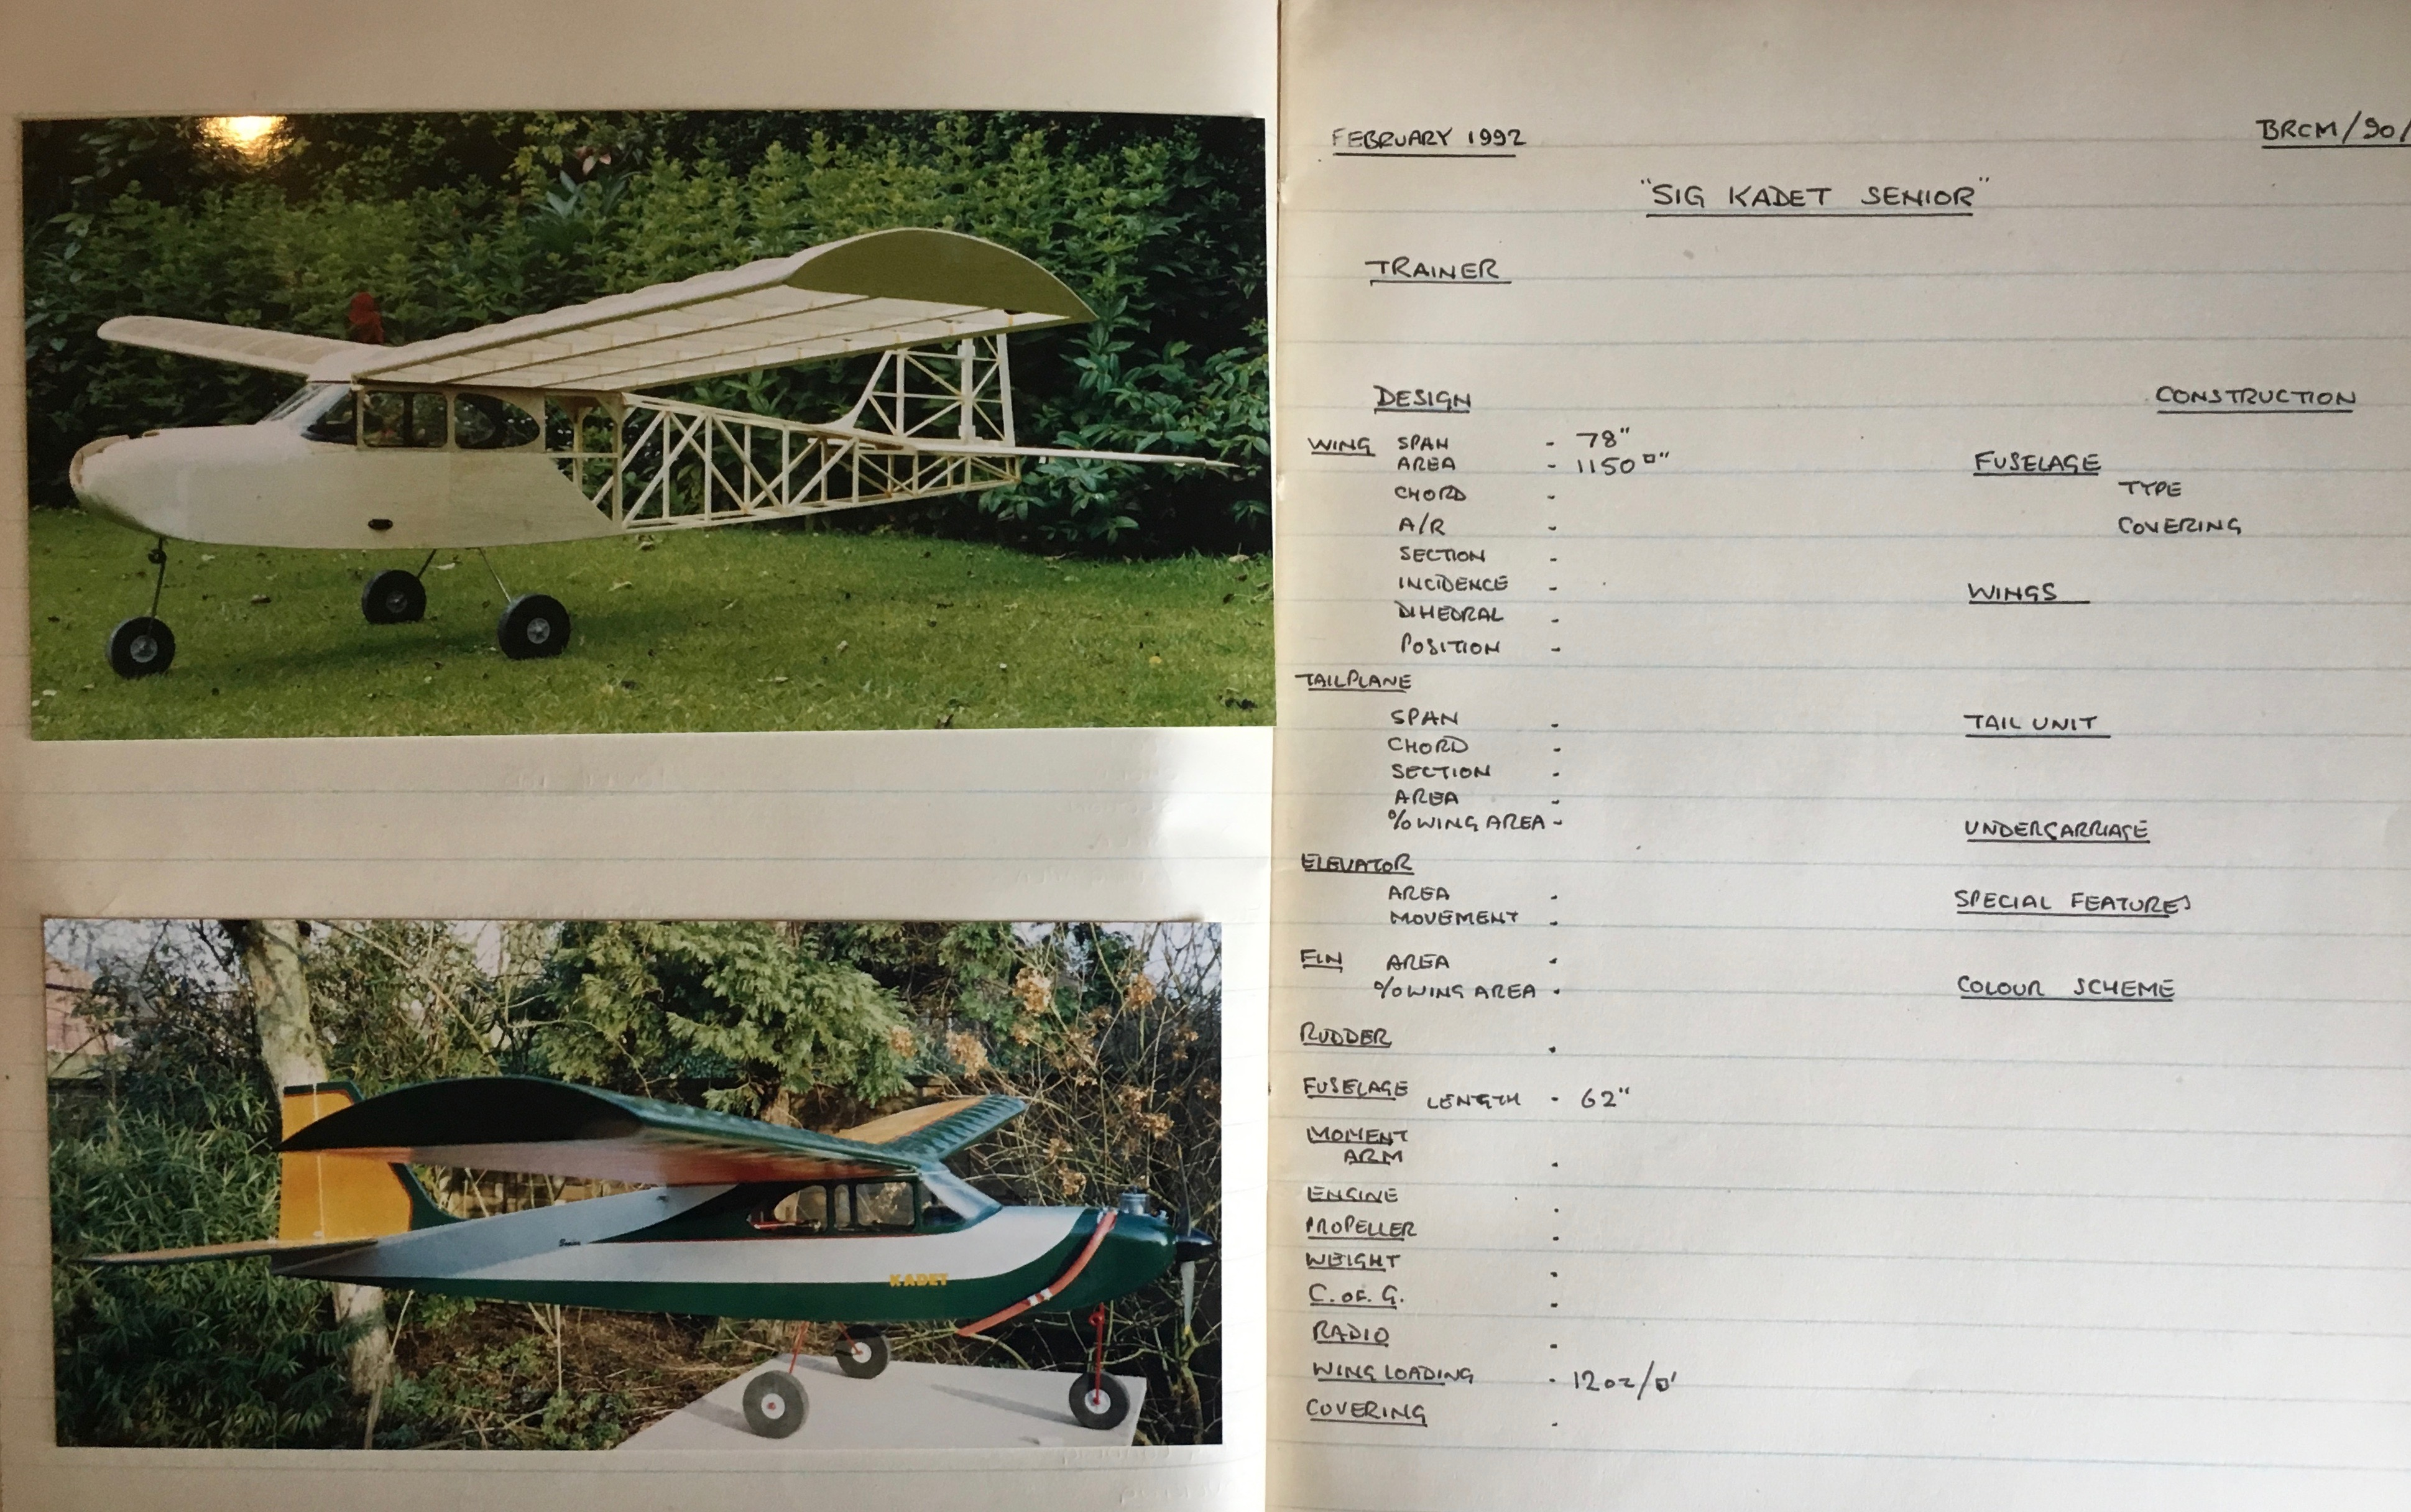 Cliff's photos and handwritten details of model aircraft he as designed and or built.